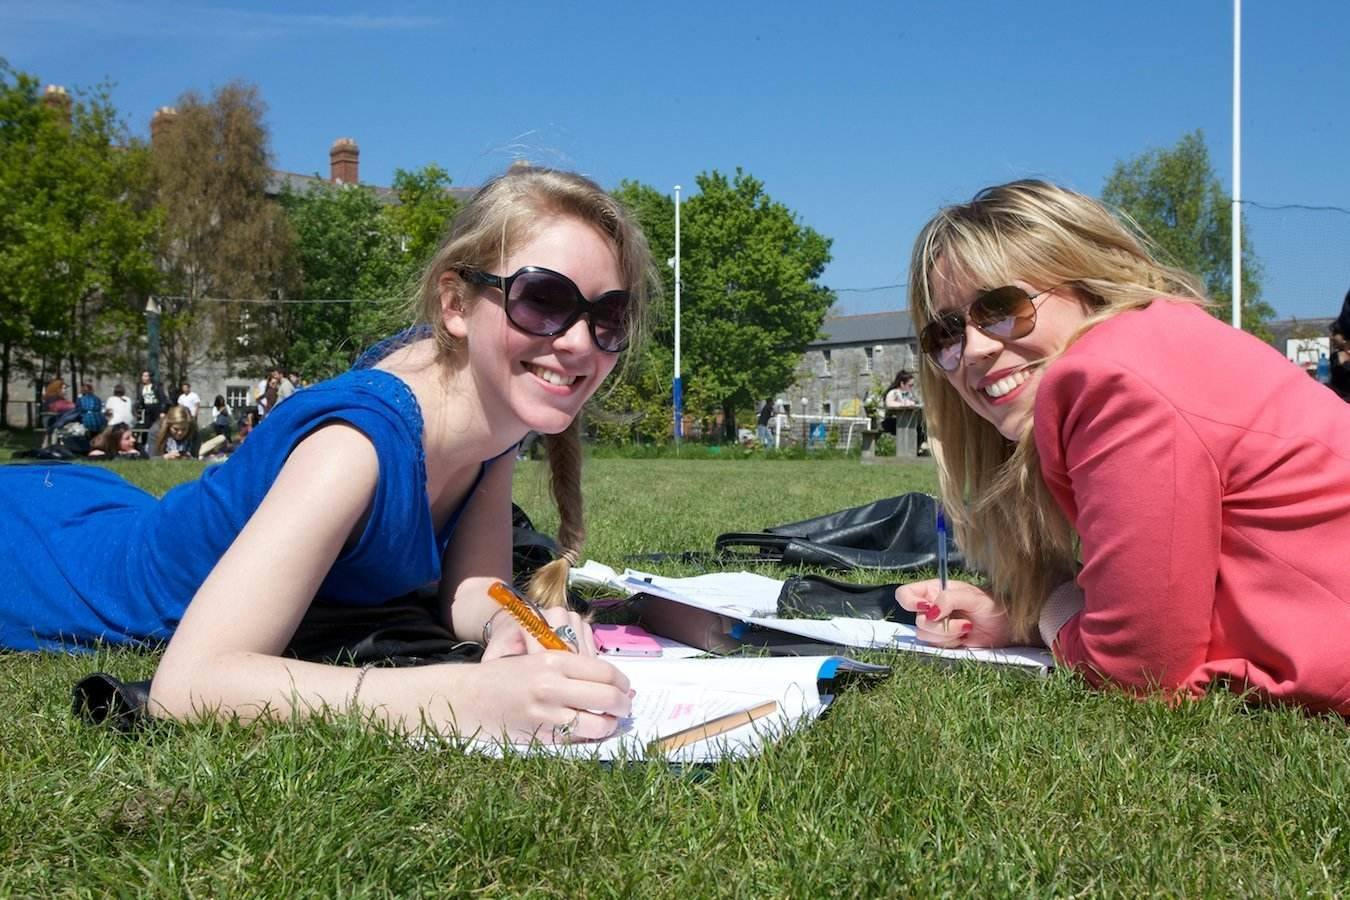 Law Students studying outdoors